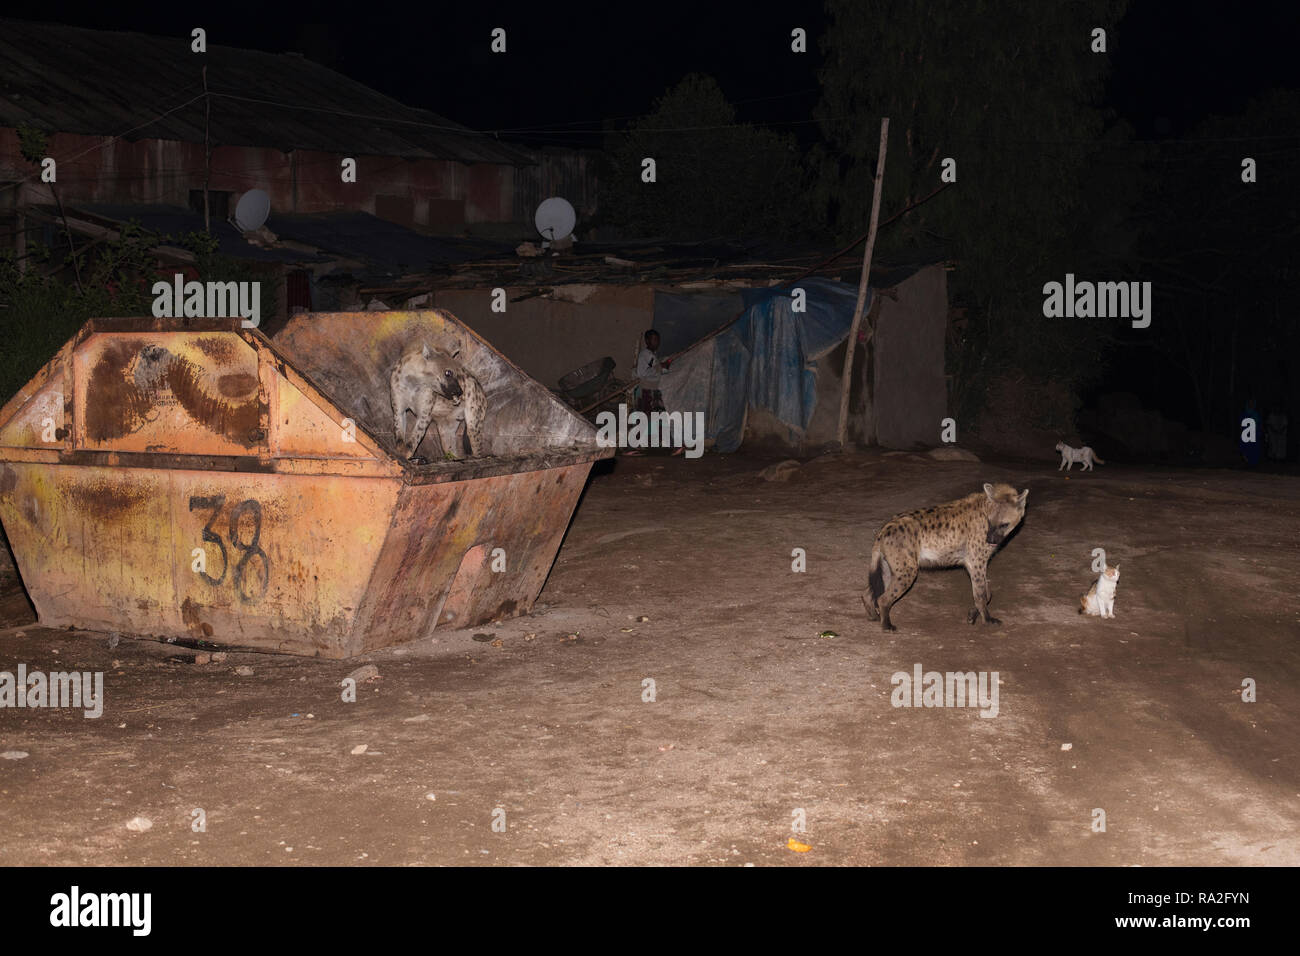 Harar / Ethiopia - May 2017: Wild hyenas entering the town of Harar at night and looking for food. - Stock Image